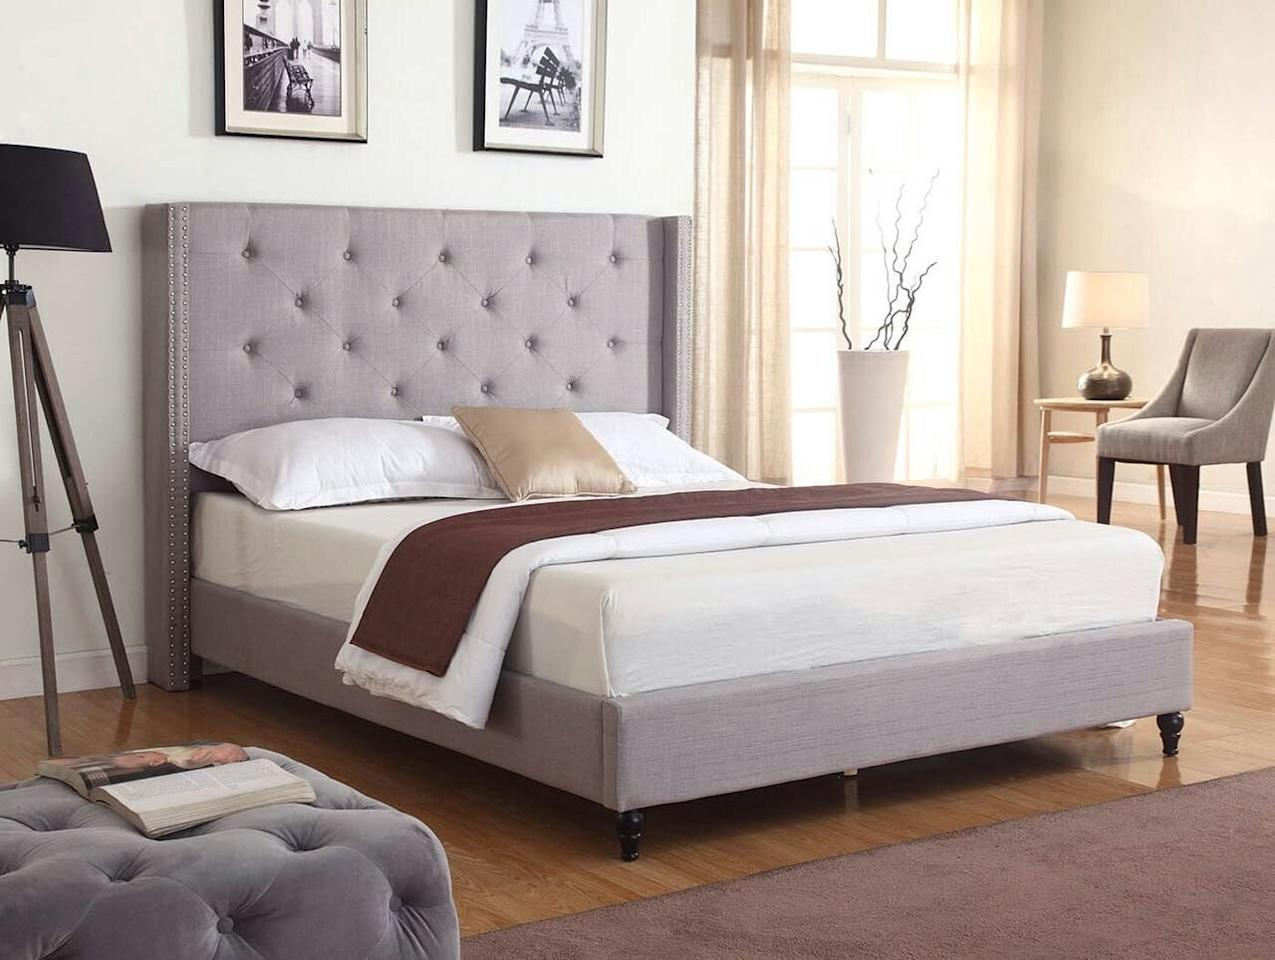 """<p>This luxe <a href=""""https://www.popsugar.com/buy/Life%20Home%20Premiere%20Classic%20Bed-428555?p_name=Life%20Home%20Premiere%20Classic%20Bed&retailer=amazon.com&price=170&evar1=casa%3Aus&evar9=46356293&evar98=https%3A%2F%2Fwww.popsugar.com%2Fhome%2Fphoto-gallery%2F46356293%2Fimage%2F46356348%2FLife-Home-Premiere-Classic-Bed&list1=amazon%2Cfurniture%2Cbedrooms%2Cshoppping%2Chome%20shopping&prop13=mobile&pdata=1"""" rel=""""nofollow"""" data-shoppable-link=""""1"""" target=""""_blank"""" class=""""ga-track"""" data-ga-category=""""Related"""" data-ga-label=""""https://www.amazon.com/Home-Premiere-Classics-Headboard-Platform/dp/B01G9B3LTK/ref=sr_1_15?keywords=velvet+bed+frame&amp;qid=1553802973&amp;s=gateway&amp;sr=8-15"""" data-ga-action=""""In-Line Links"""">Life Home Premiere Classic Bed</a> ($170-$285) looks triple the price. </p>"""